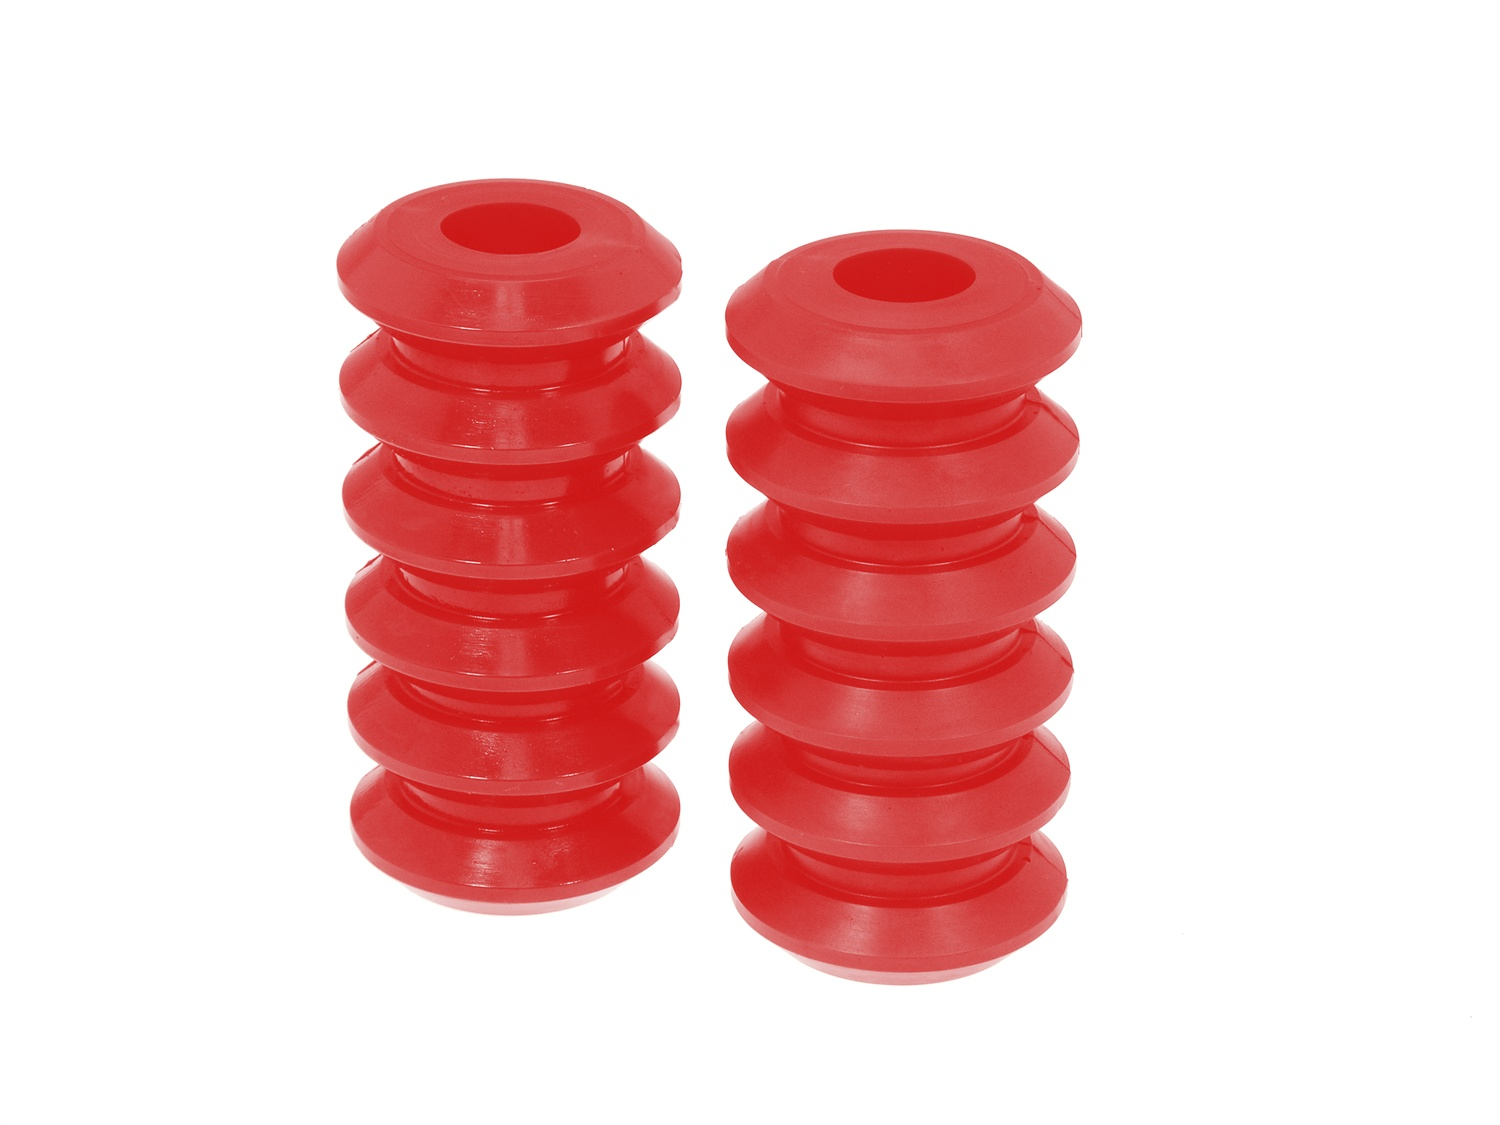 All Vehicles (Universal) Prothane Coil Spring Inserts - 5 Inch - Red